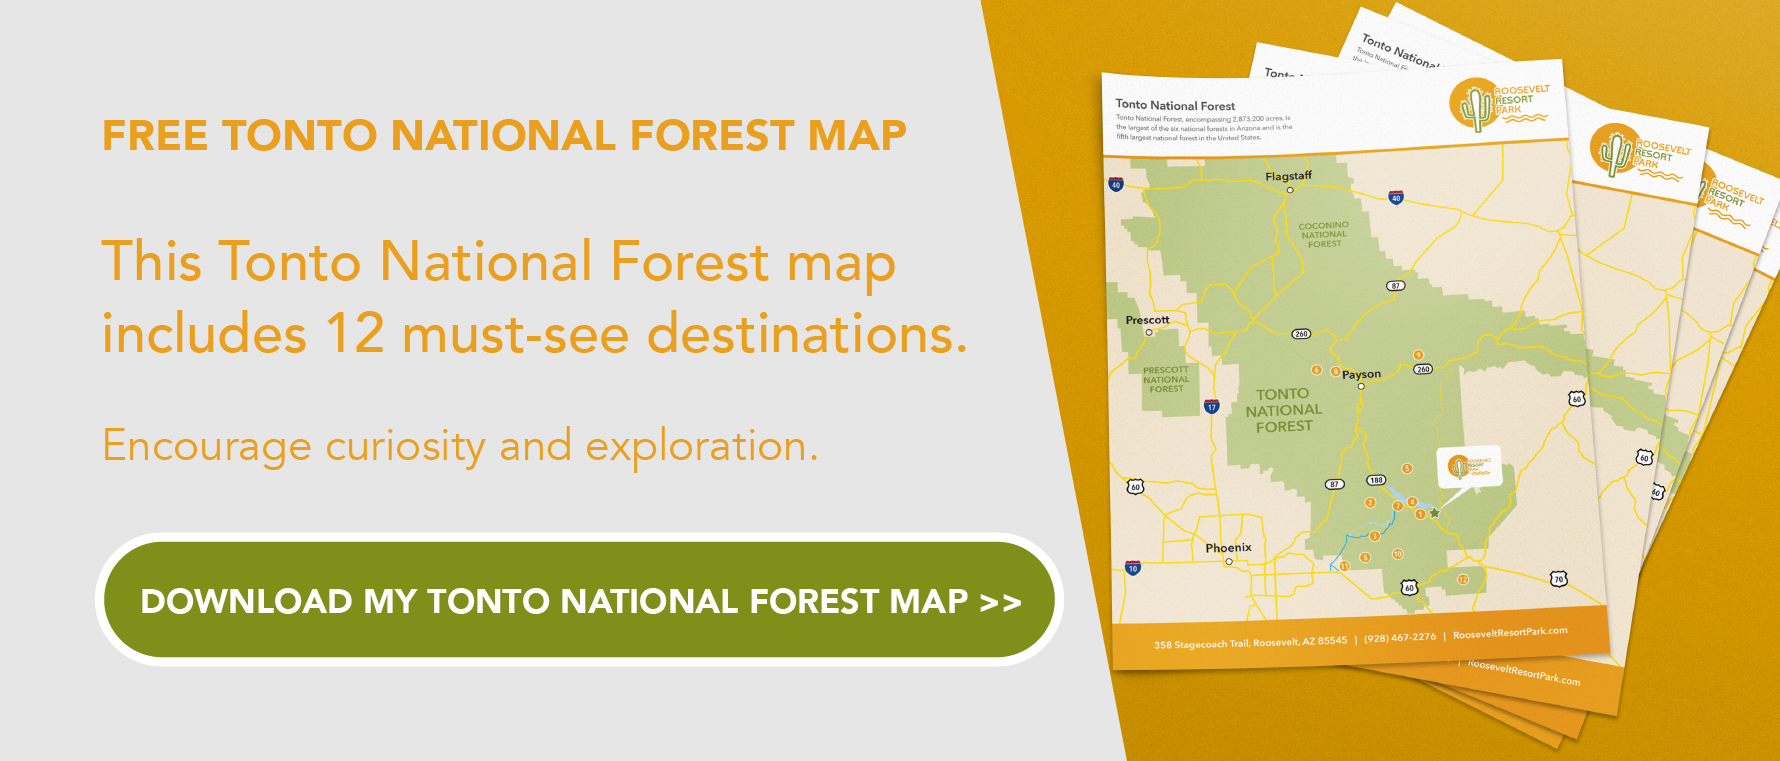 Tonto National Forest Map Guide